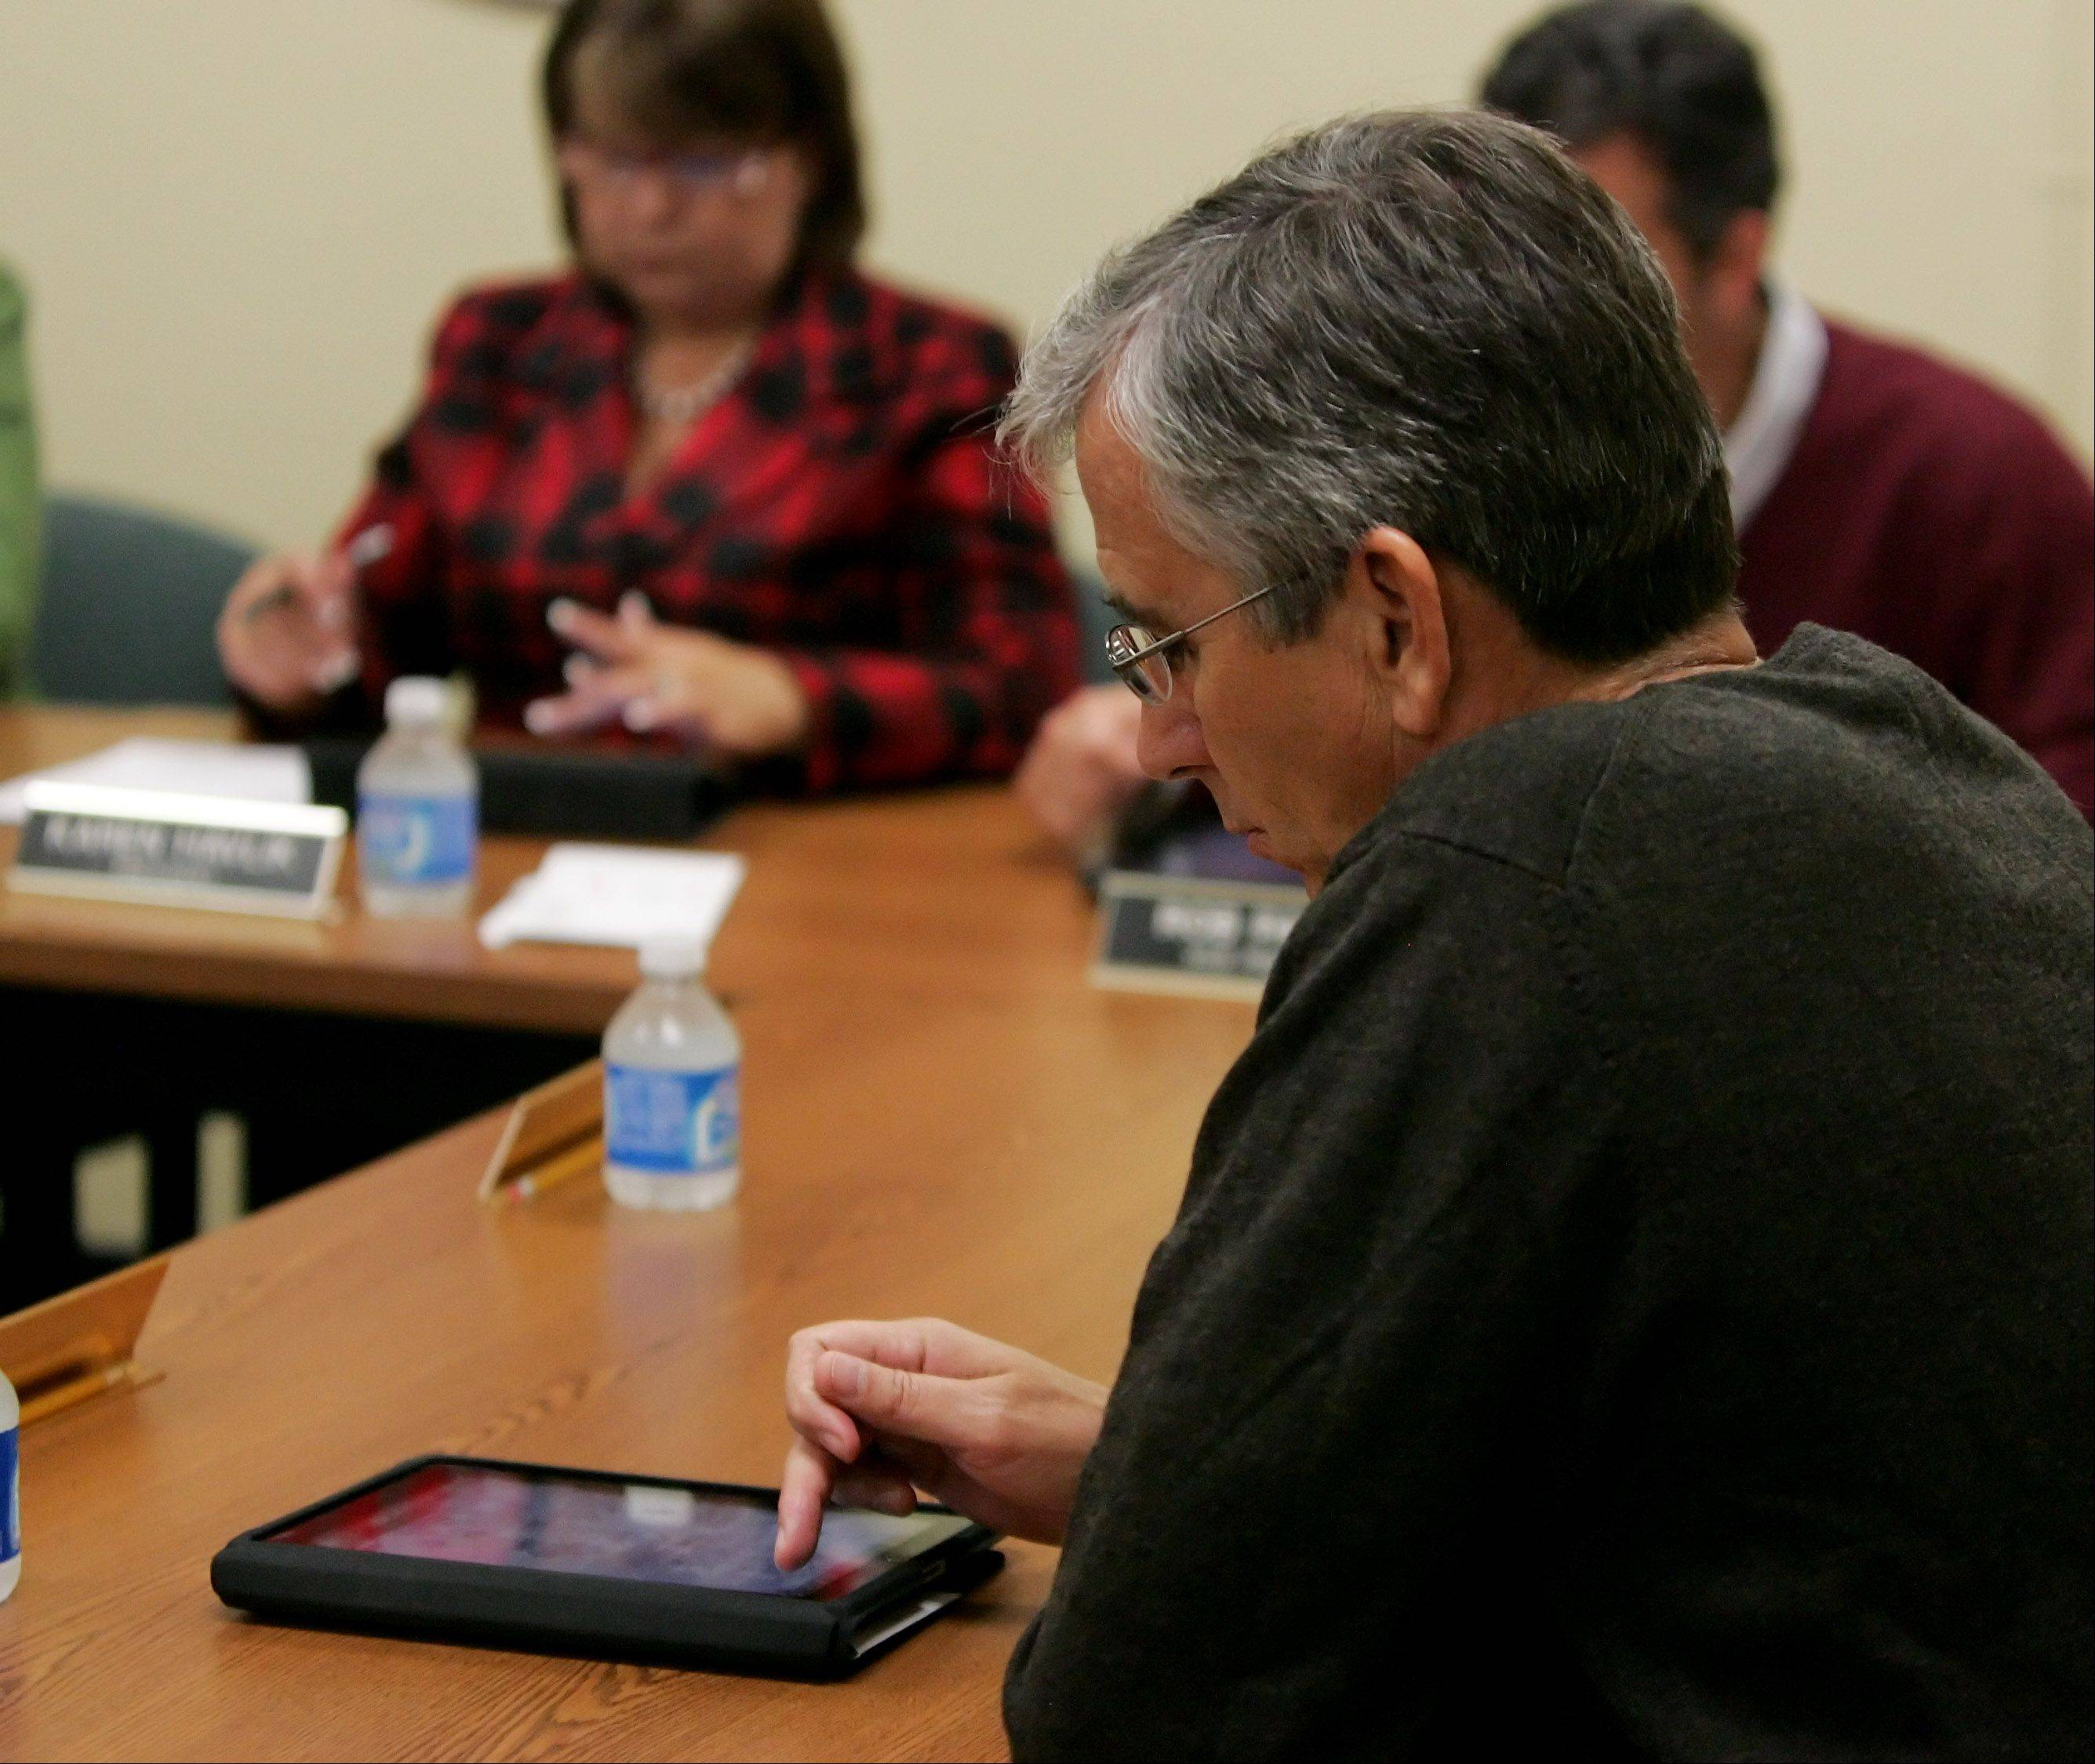 Mundelein High School board member Edwin Specht works on his Apple iPad during a recent meeting. The board is among the few in the suburbs that has gone paperless with iPads.